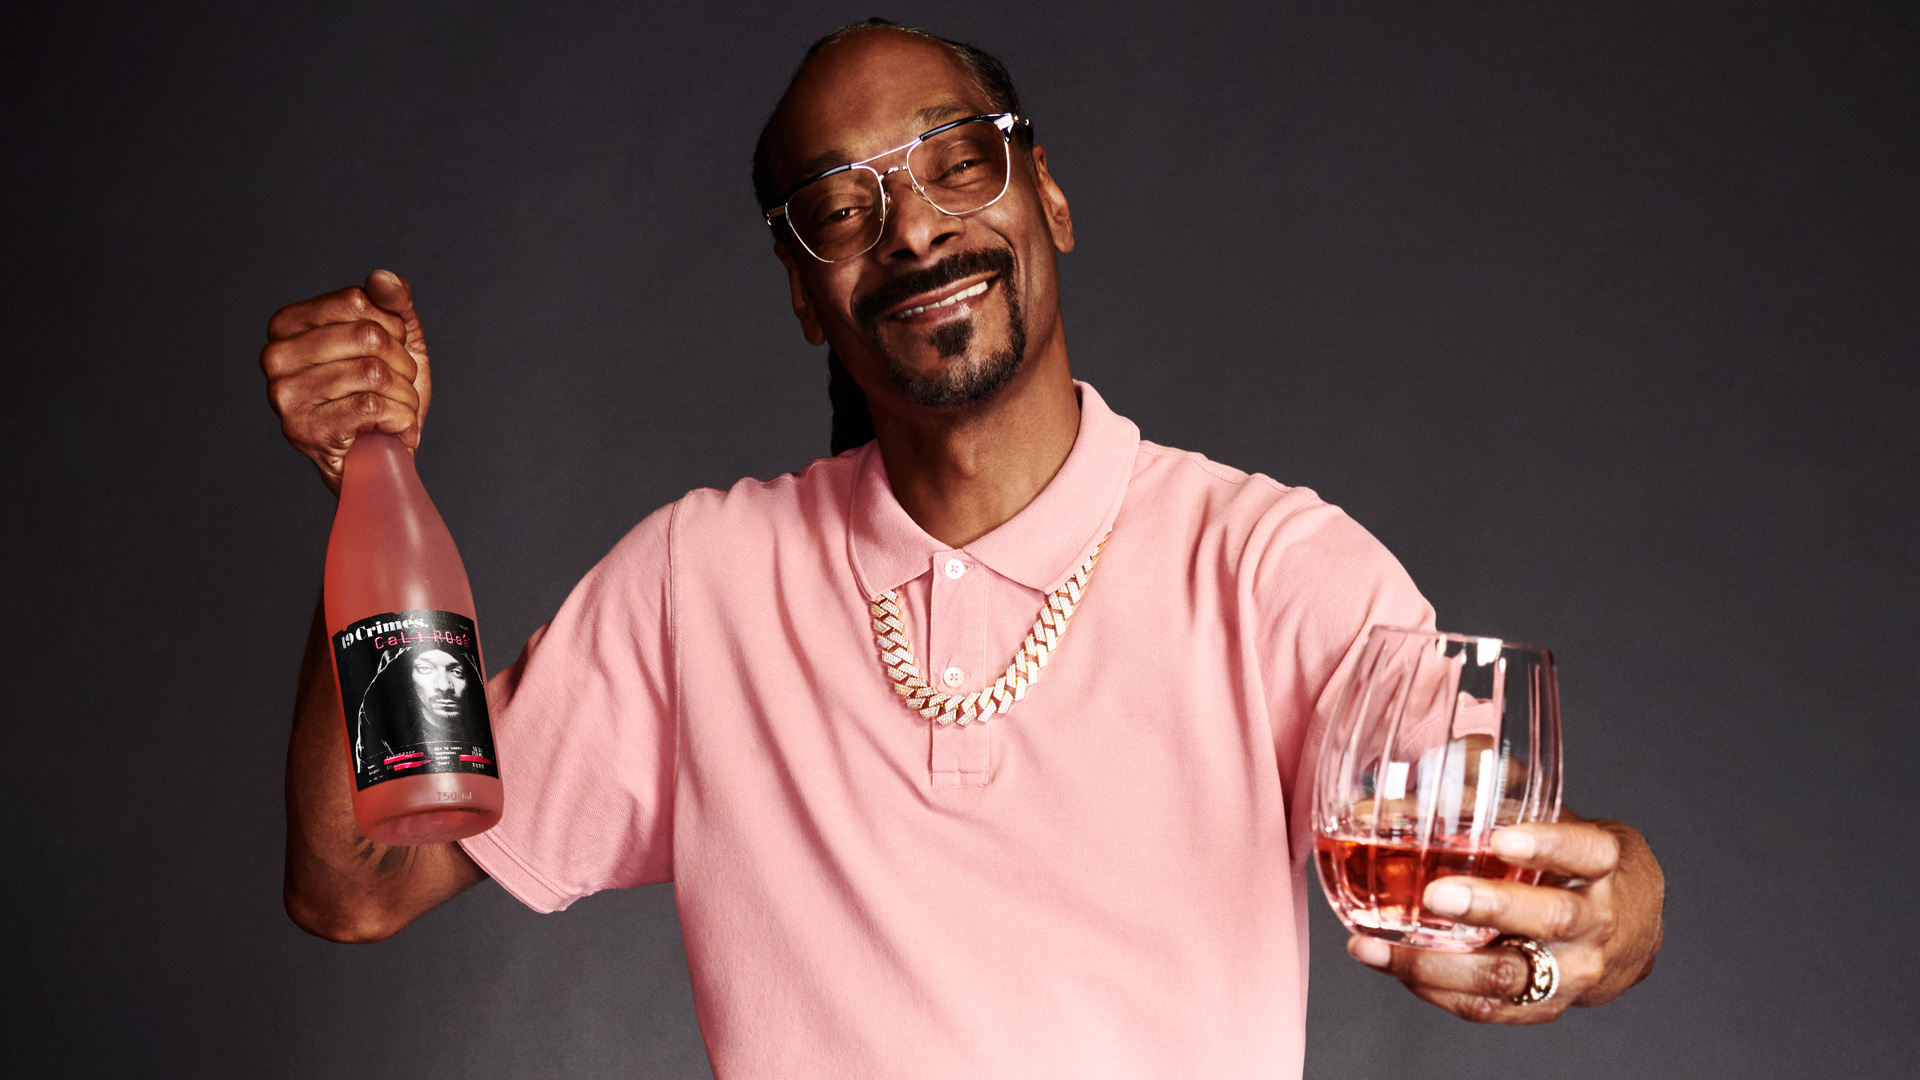 a photo of snoop dogg posing with a glass and bottle of his new brand of wine Snoop Cali Rosé